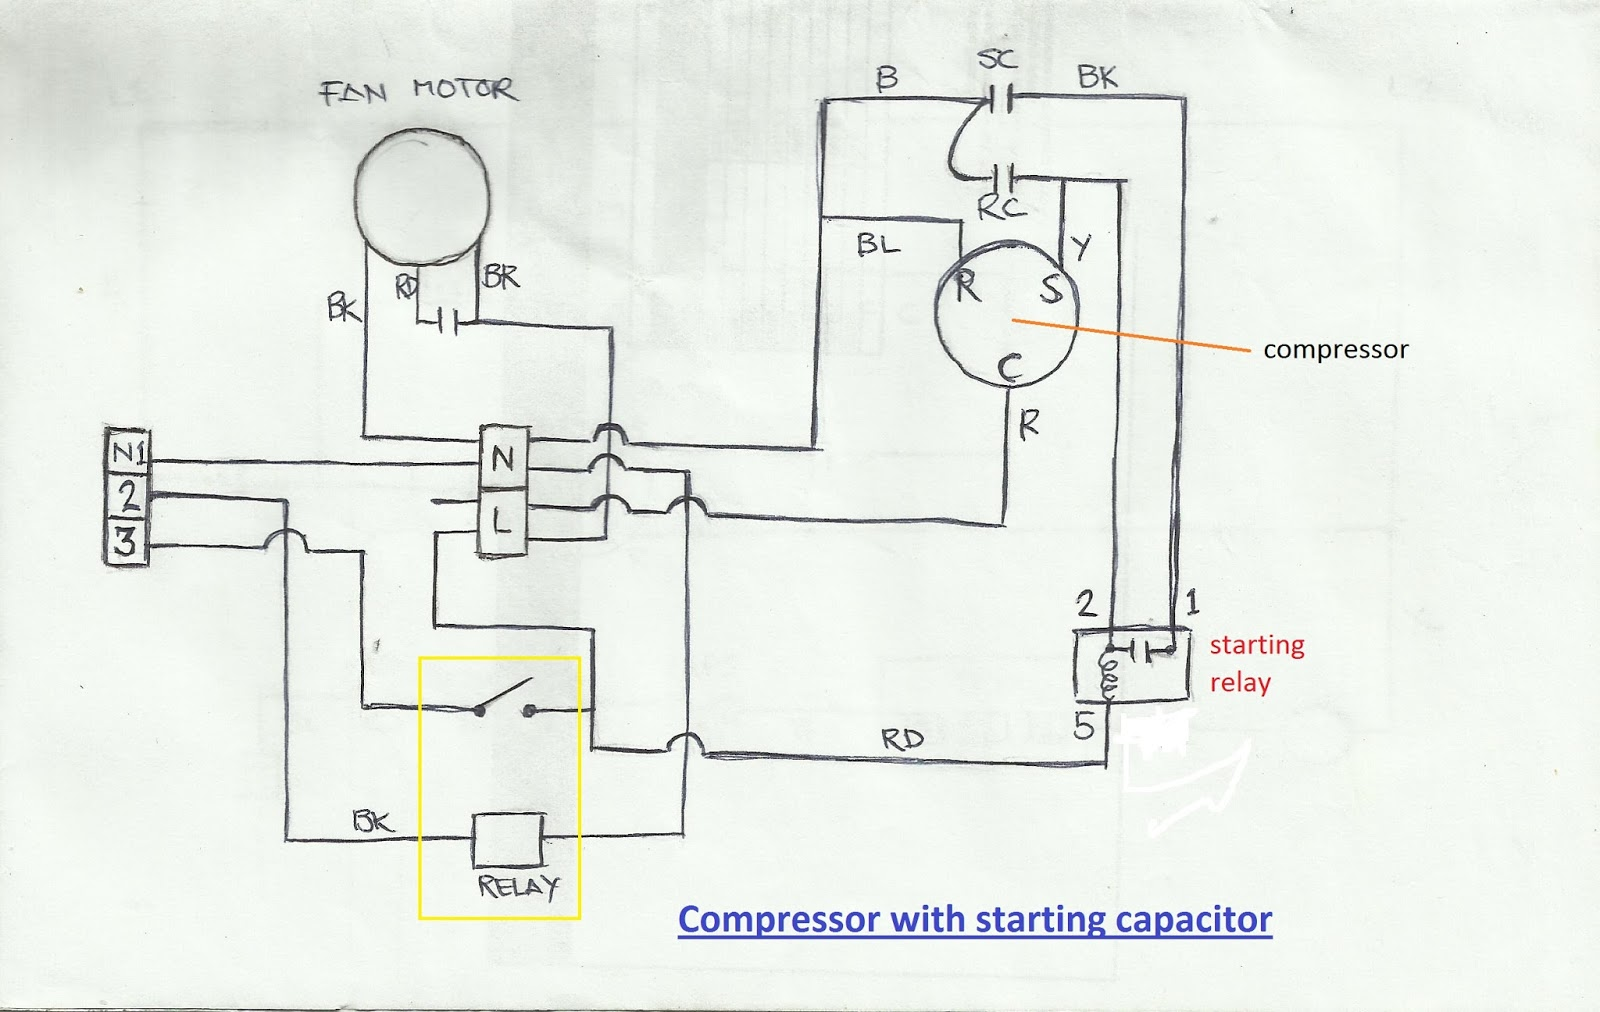 Wiring Diagram For Ac Unit Capacitor : Carrier start capacitor wiring diagram get free image